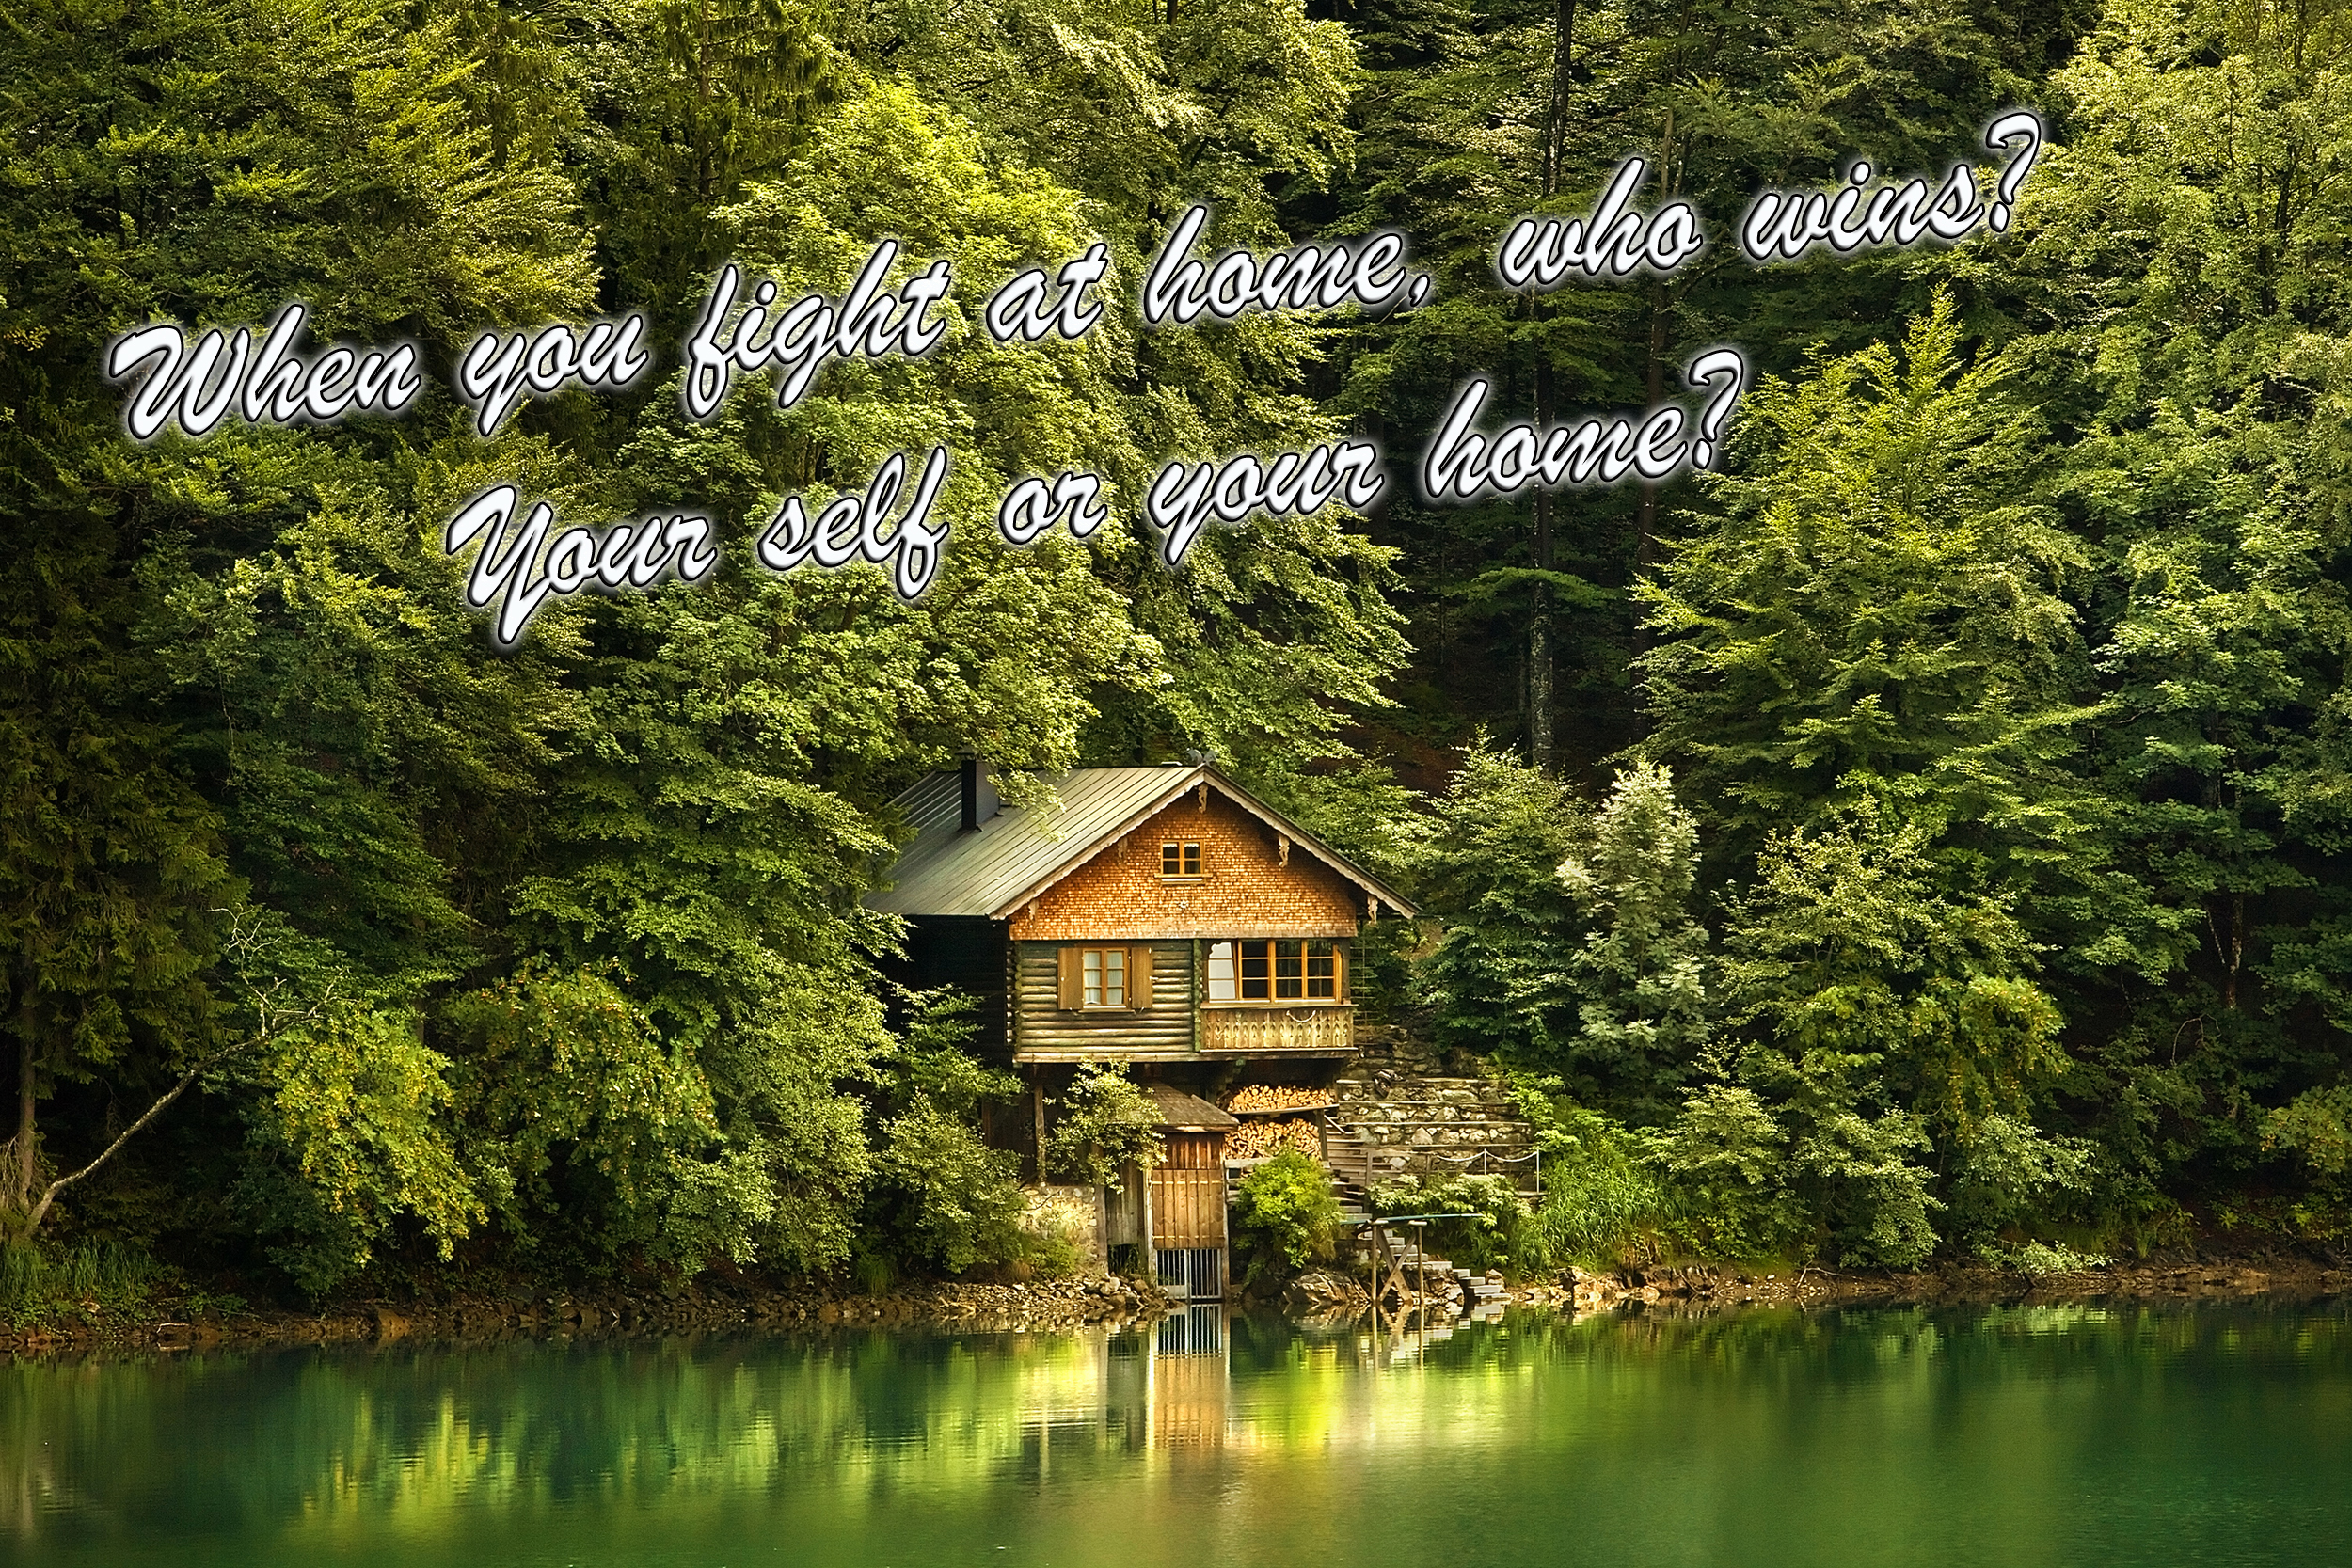 Cottage on the lake small.jpg